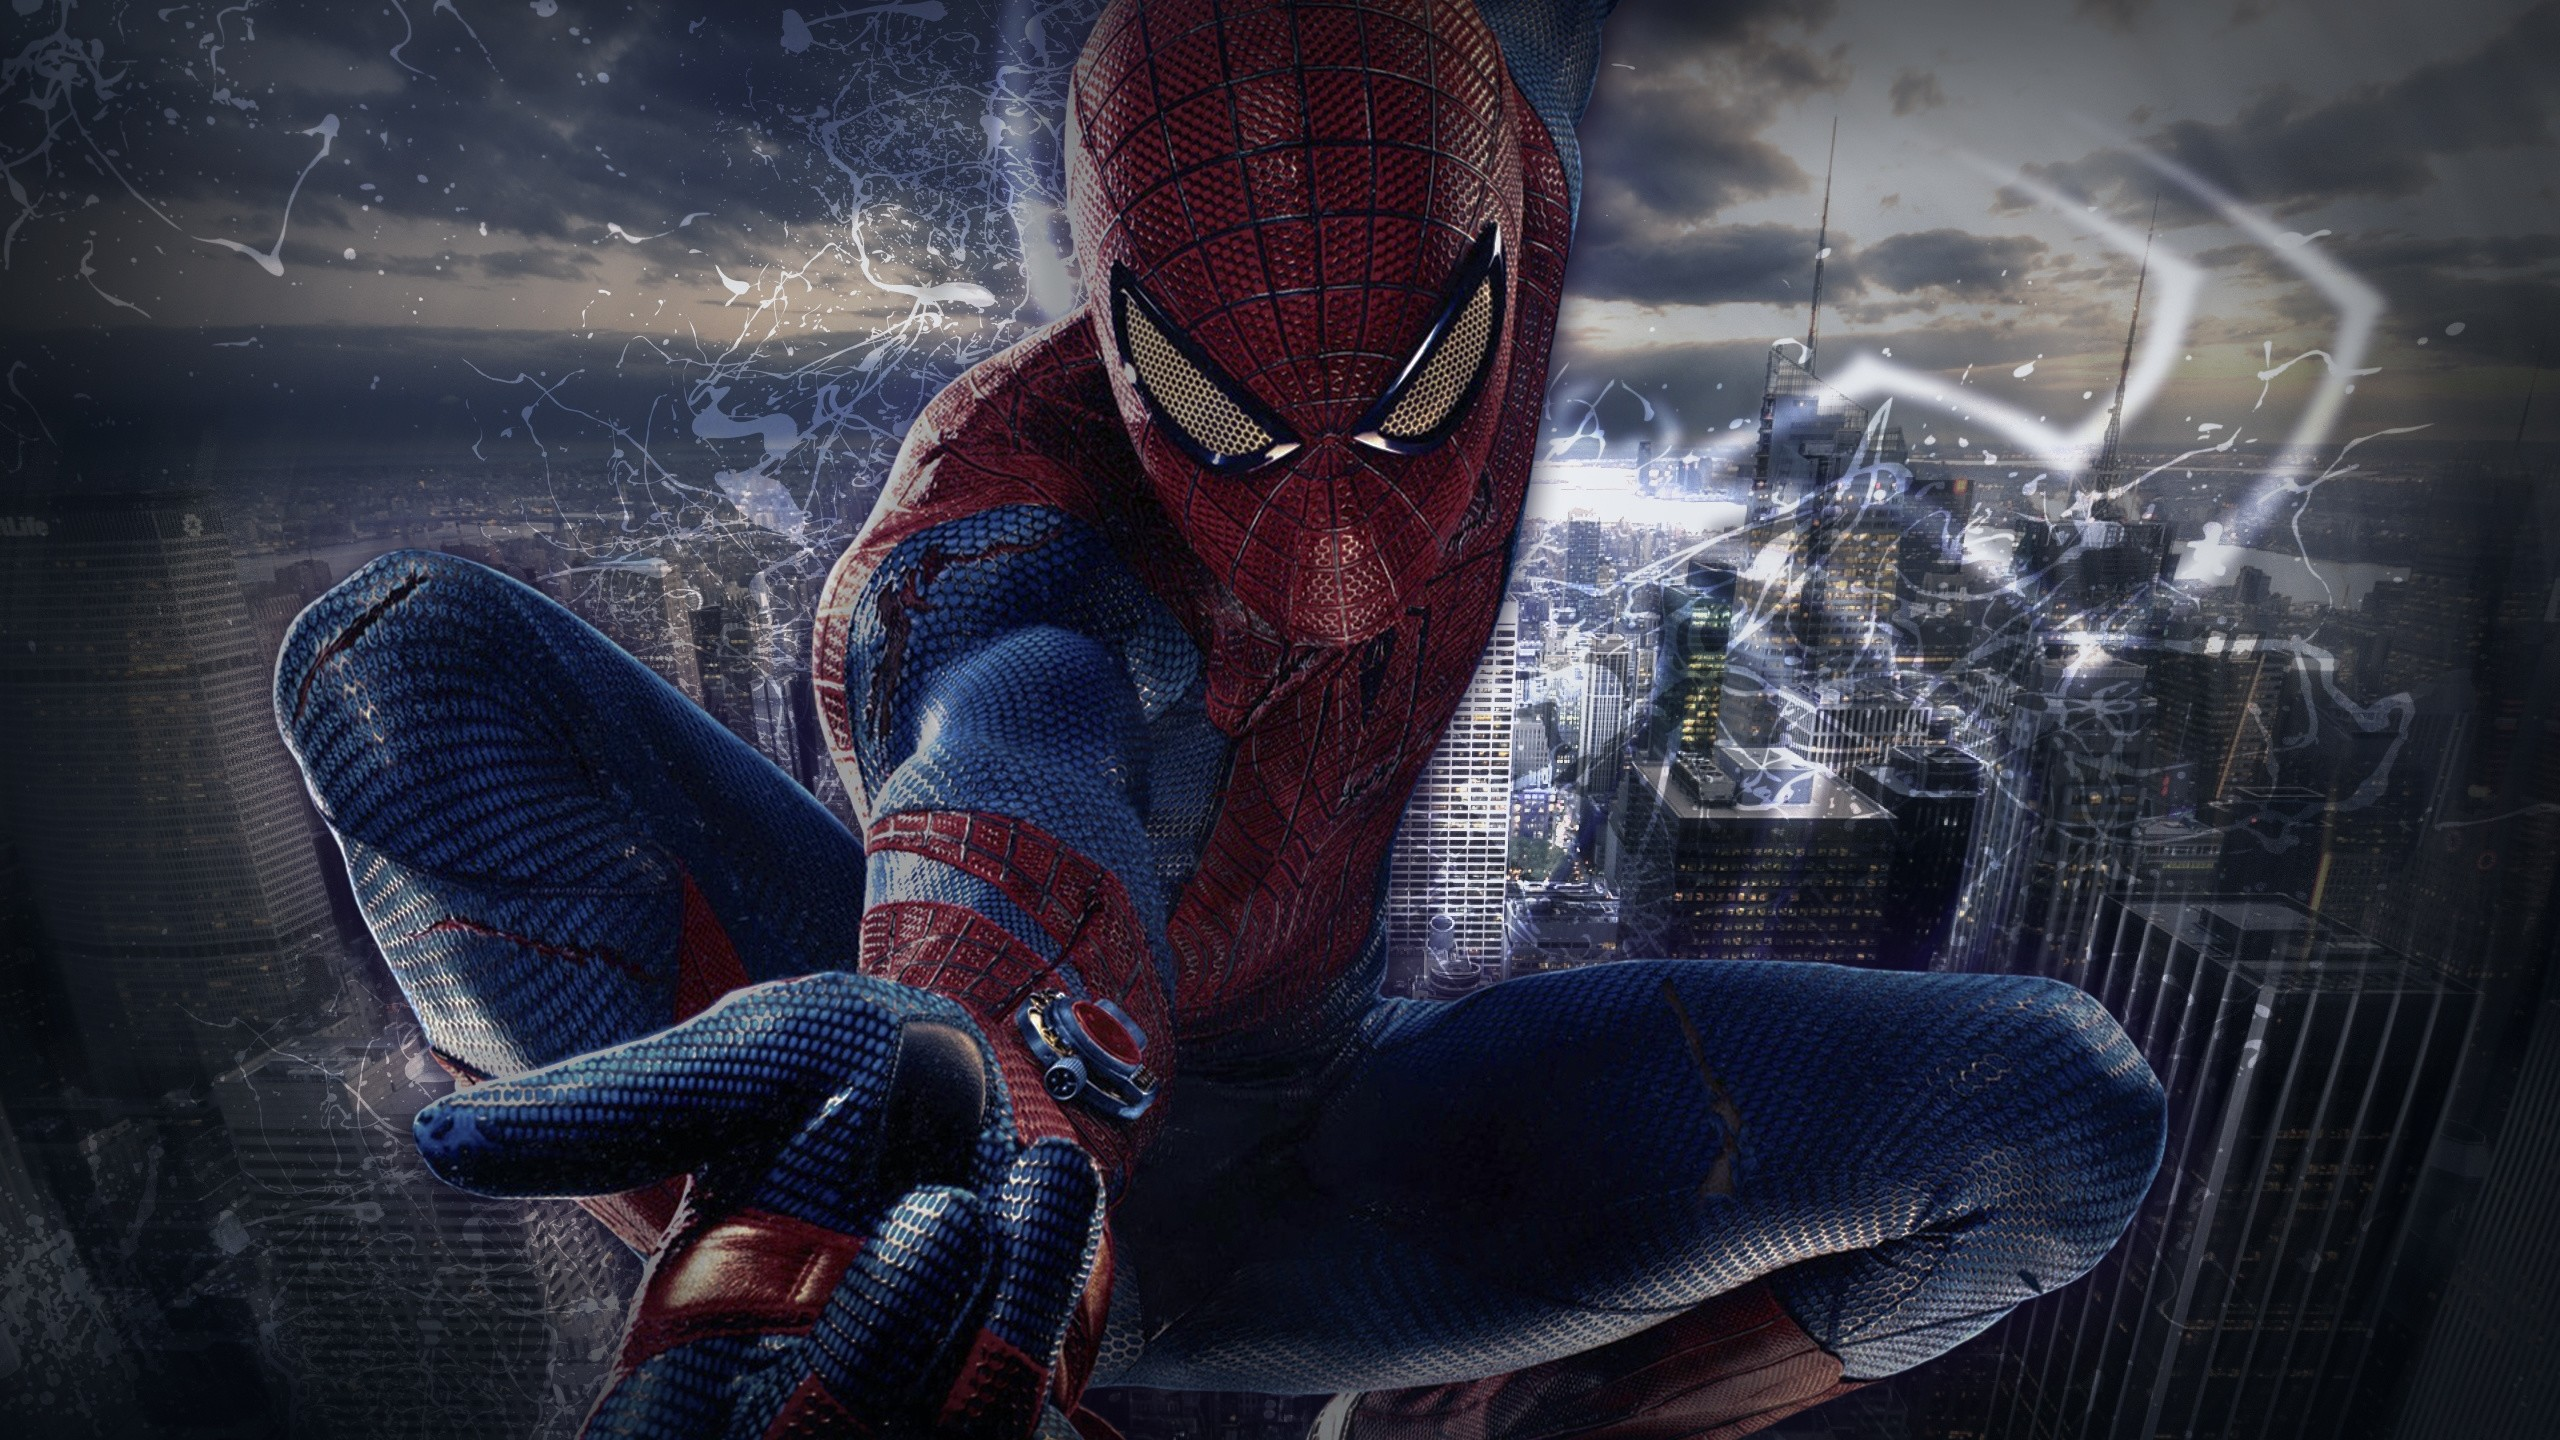 2560x1440 4K Spiderman Wallpaper, HQ Definition Desktop Wallpapers ... 4k superhero  ...